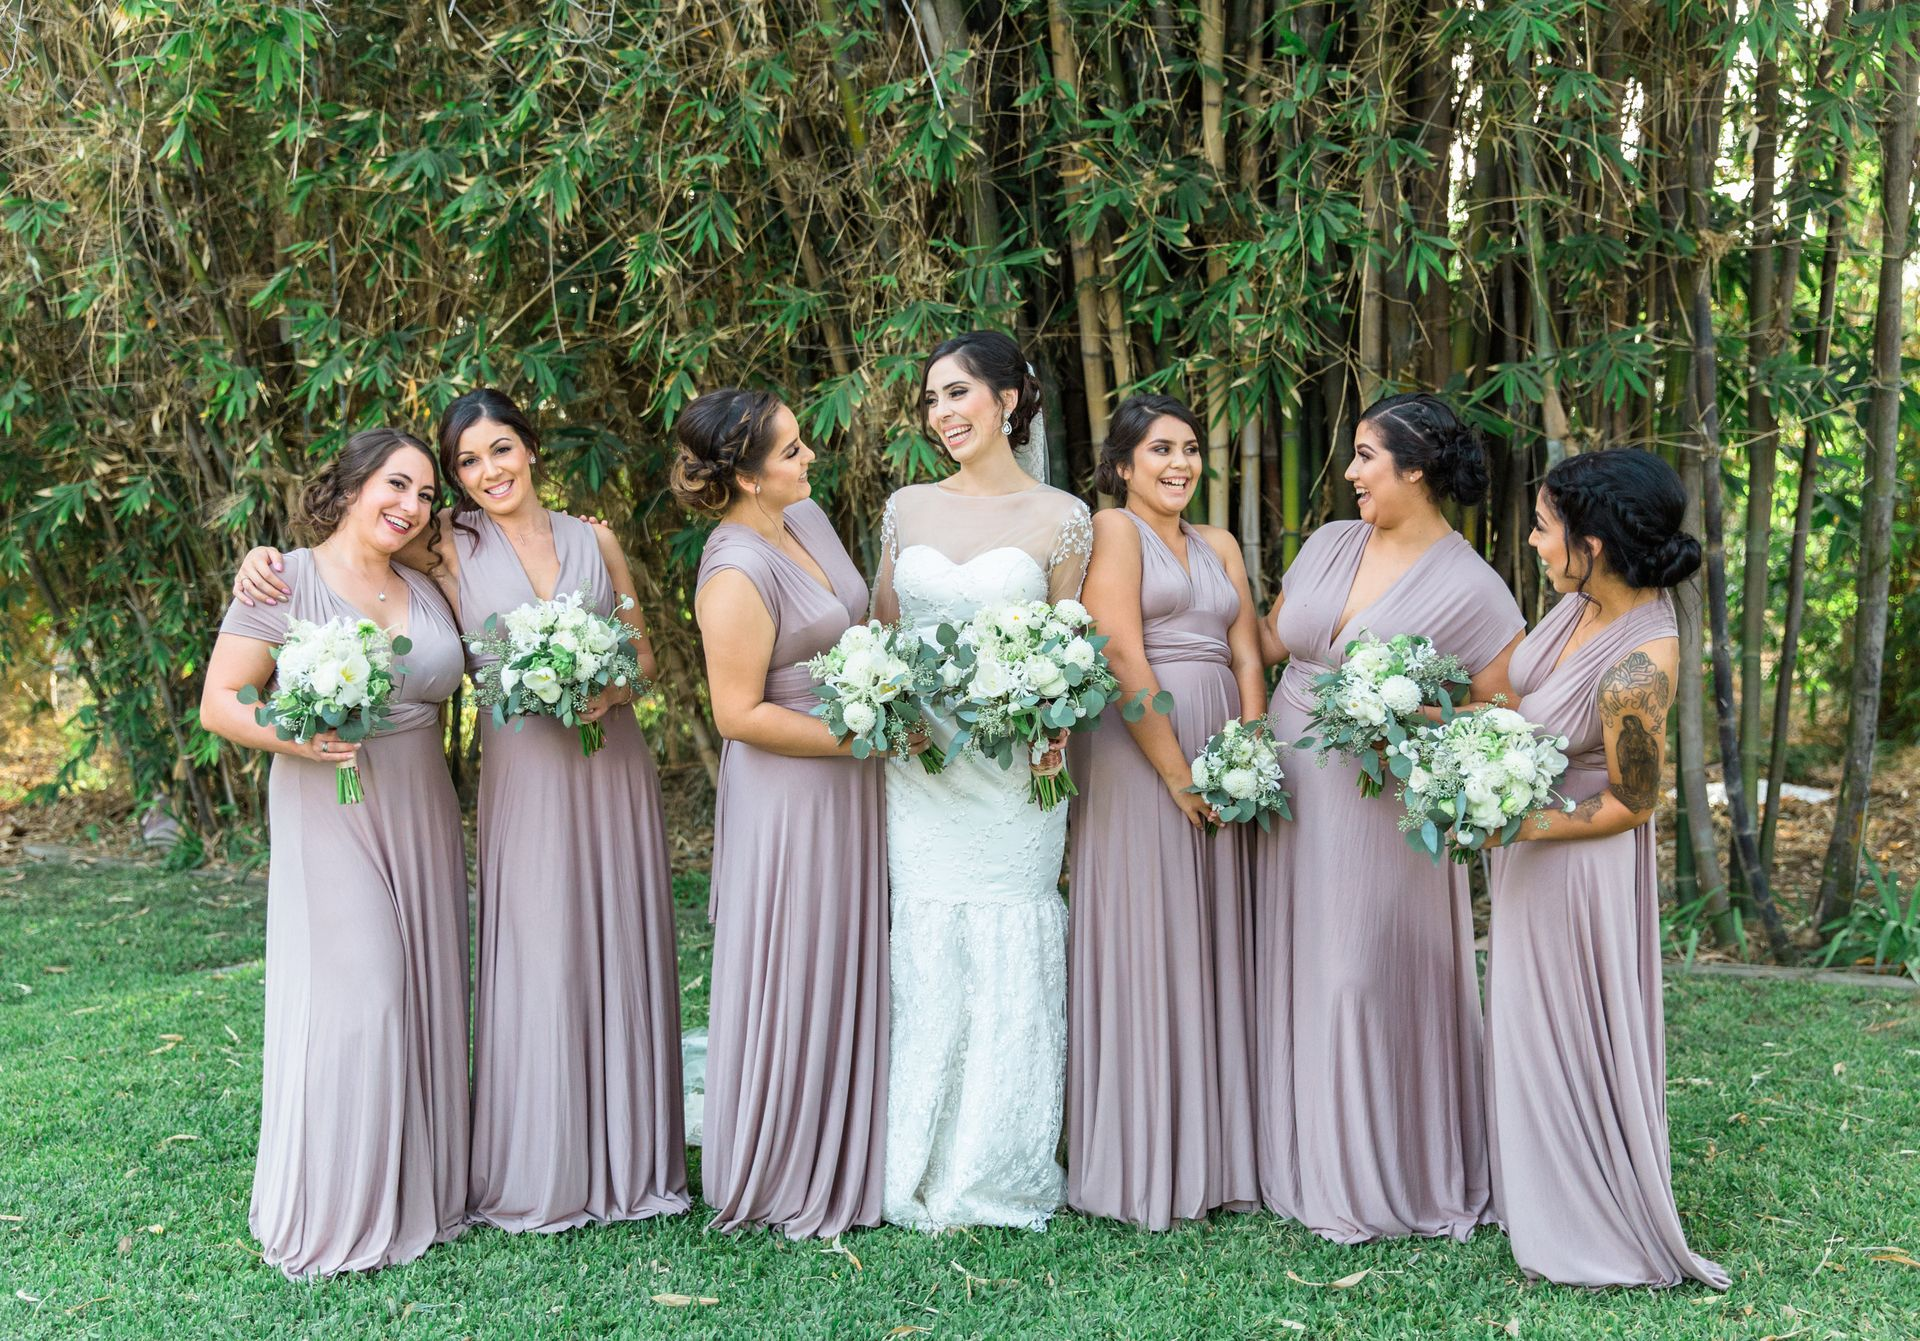 Natural fall wedding in california santa fe springs ca silk bridal party fashion long lavender bridesmaid dresses silk gowns white floral wedding bouquets ombrellifo Images